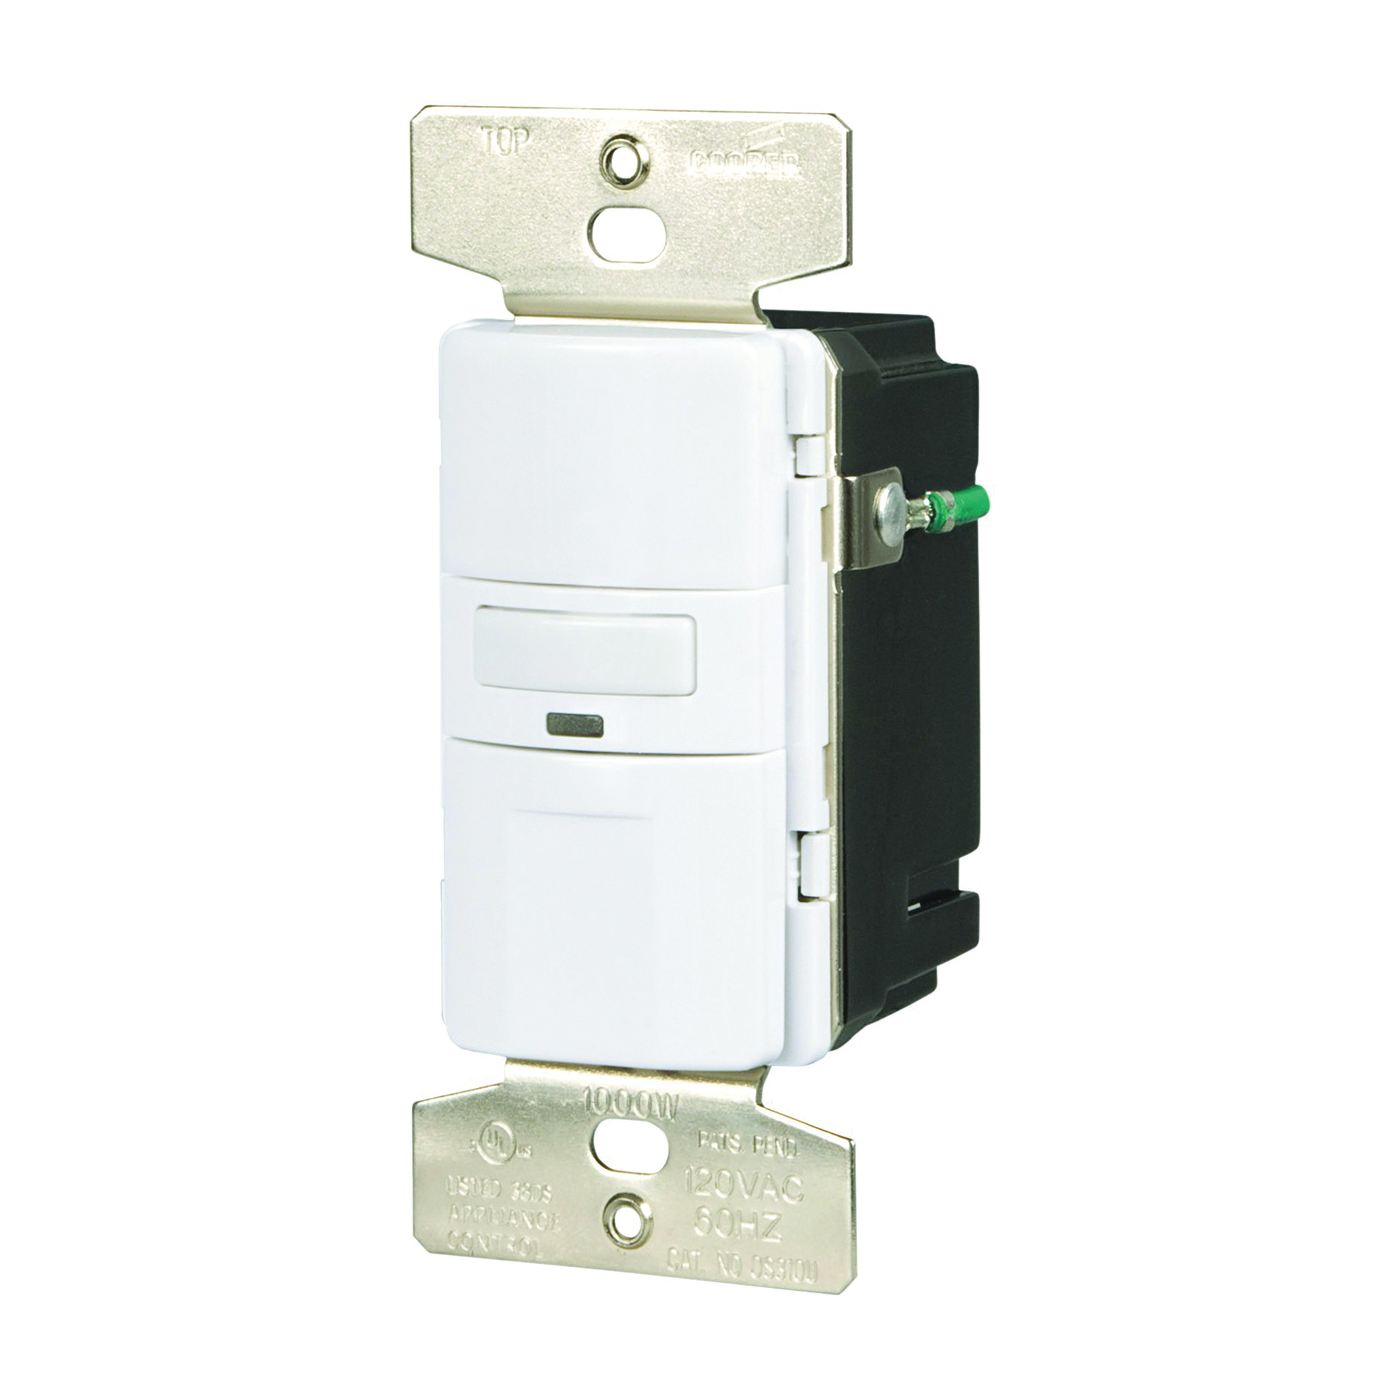 Picture of Eaton Wiring Devices OS310U-W-K Motion Sensor Switch with Nightlight and LED, 8.3 A, 120 V, 1-Pole, Motion Sensor